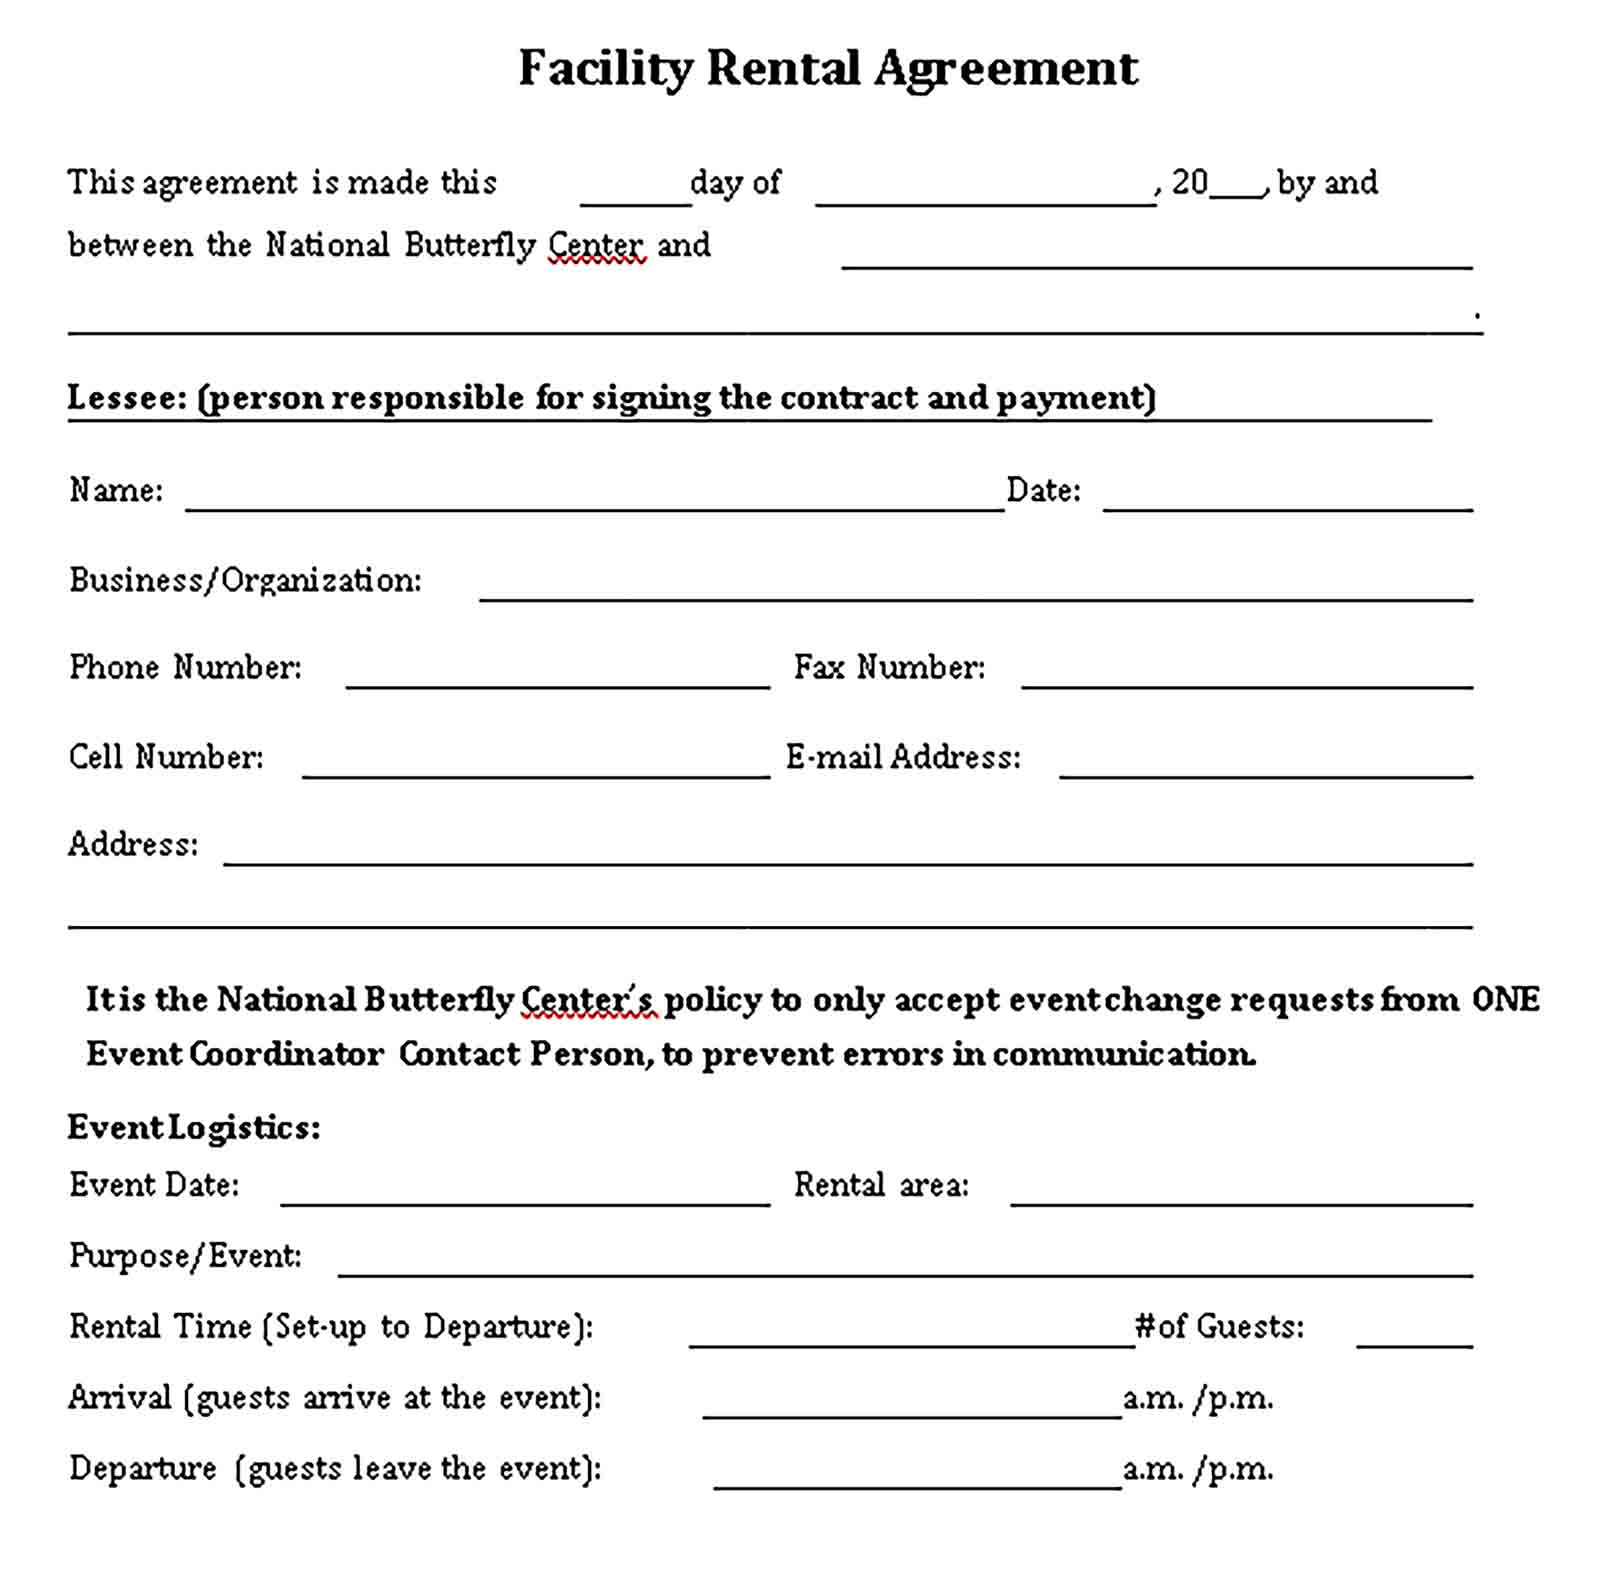 Templates National Butterfly Center Facility Rental Agreement Sample